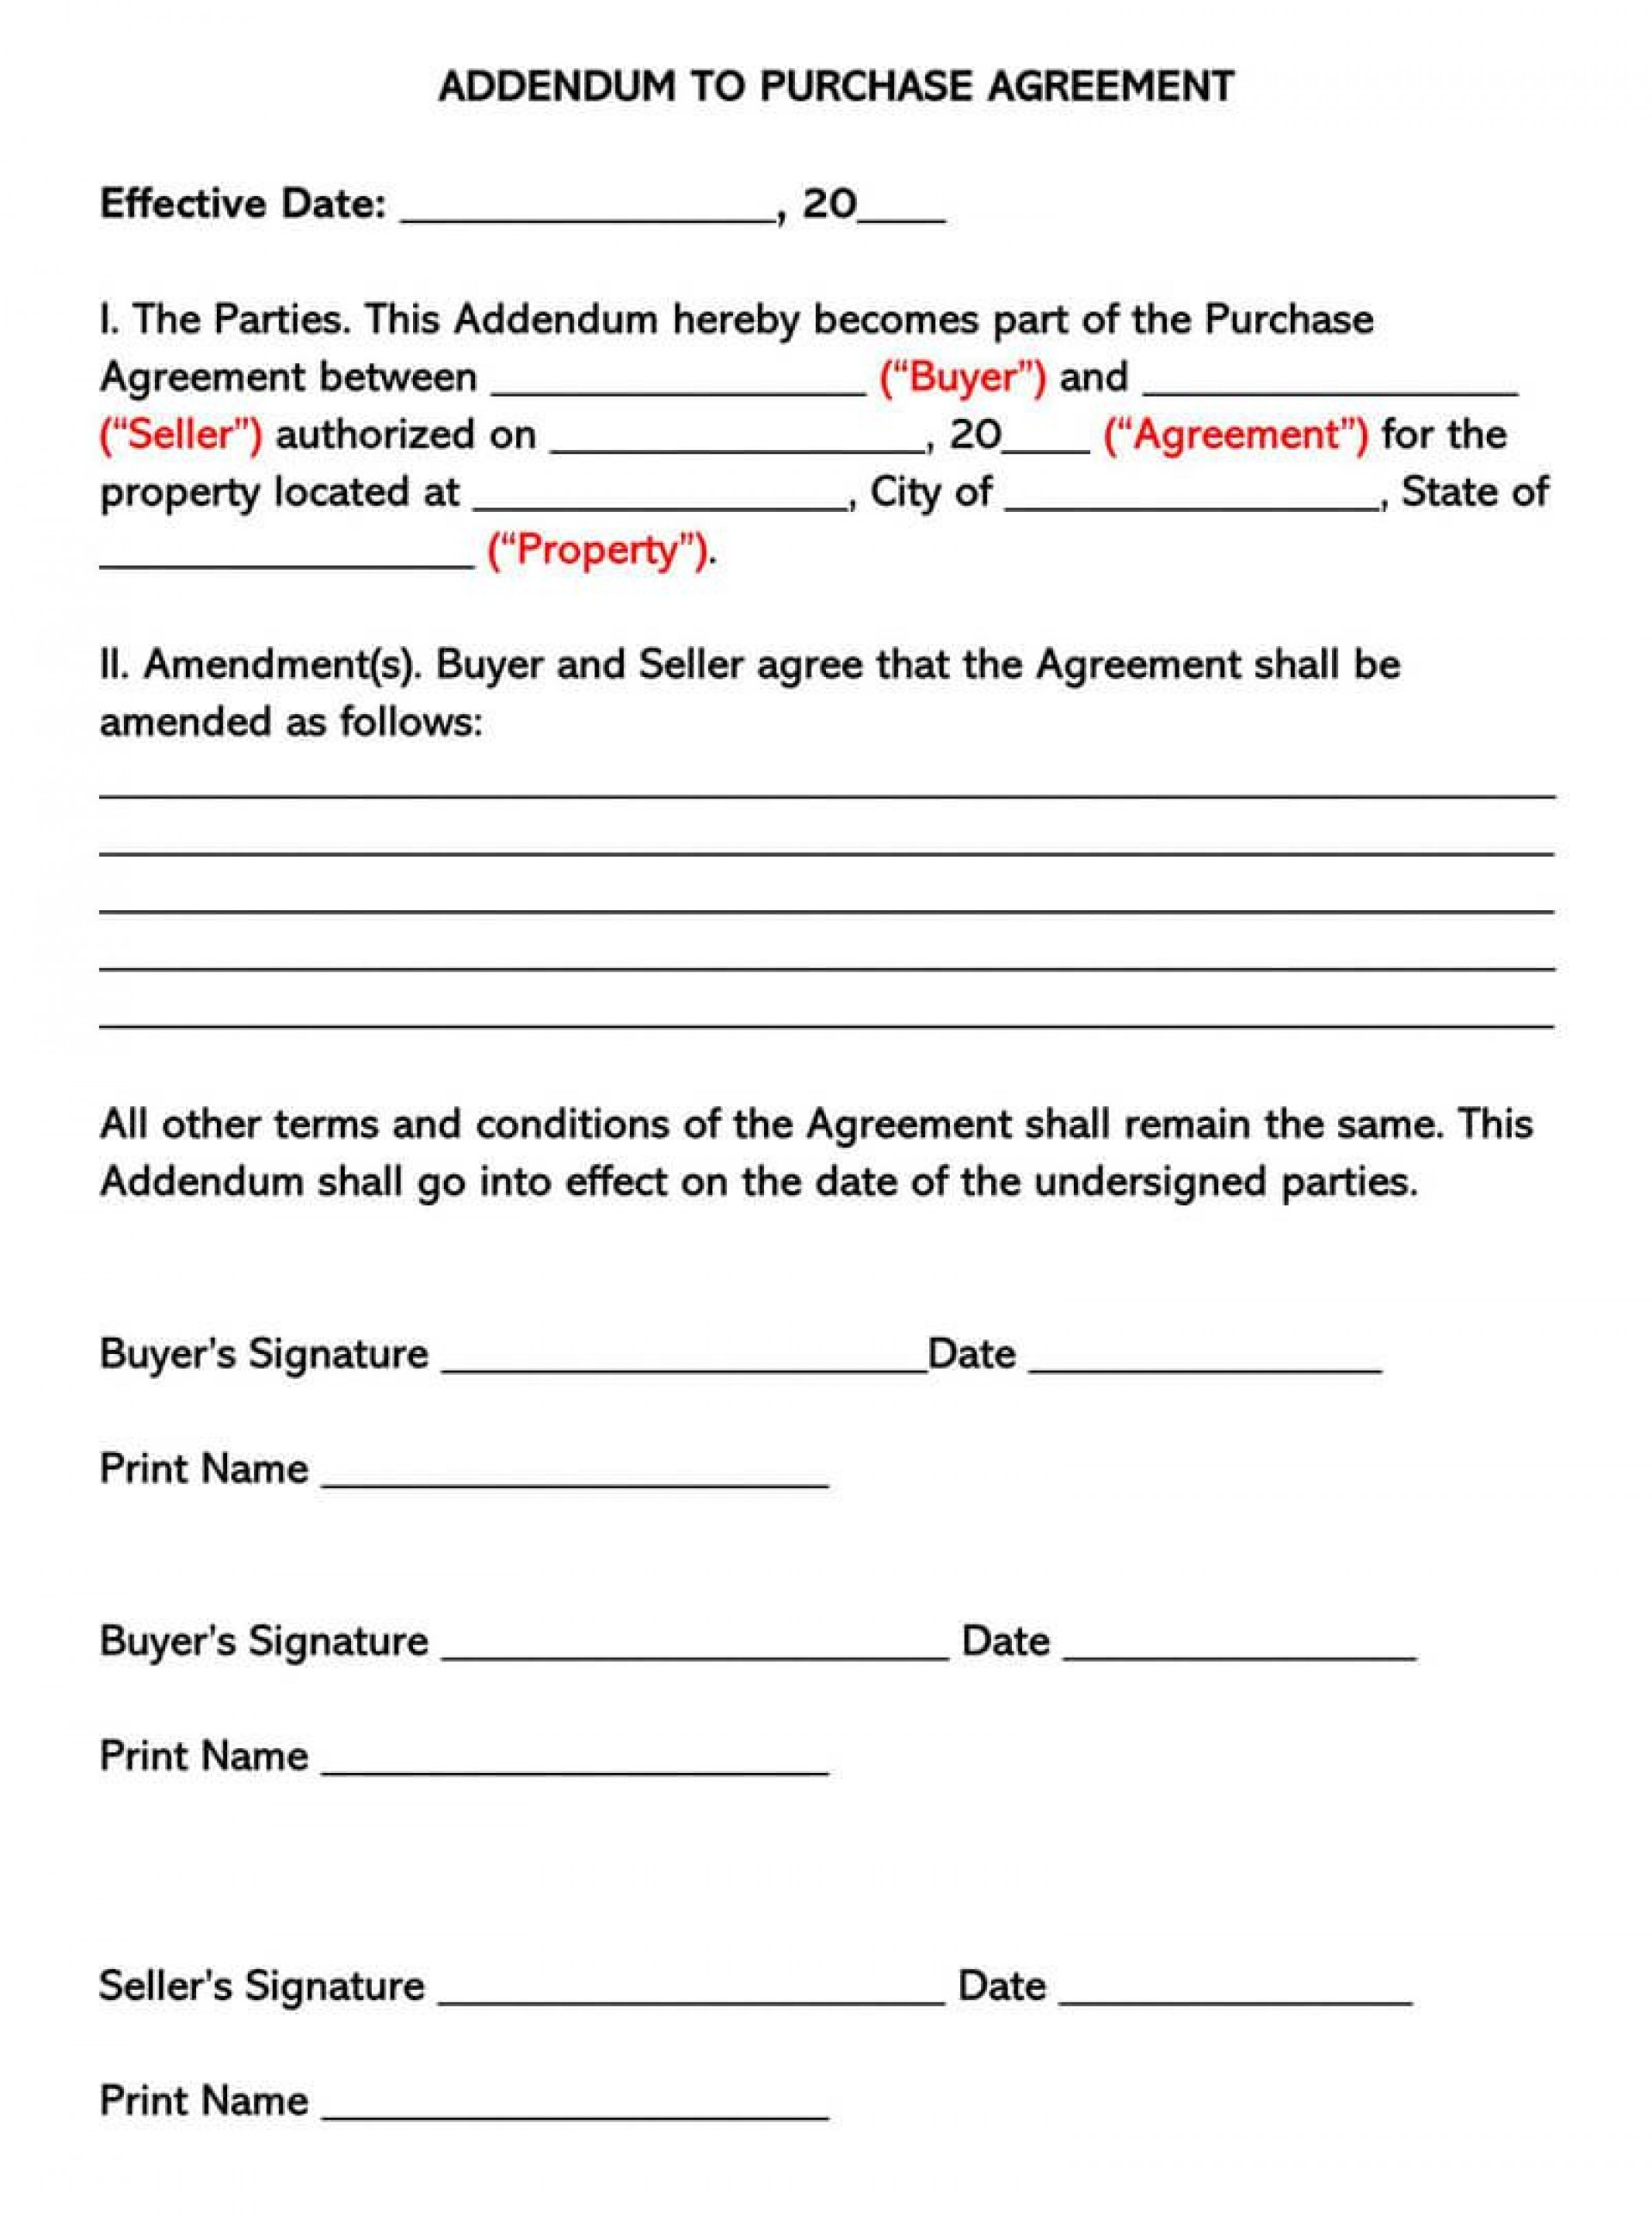 002 Awesome Purchase Agreement Template For Home Concept  Mobile1920